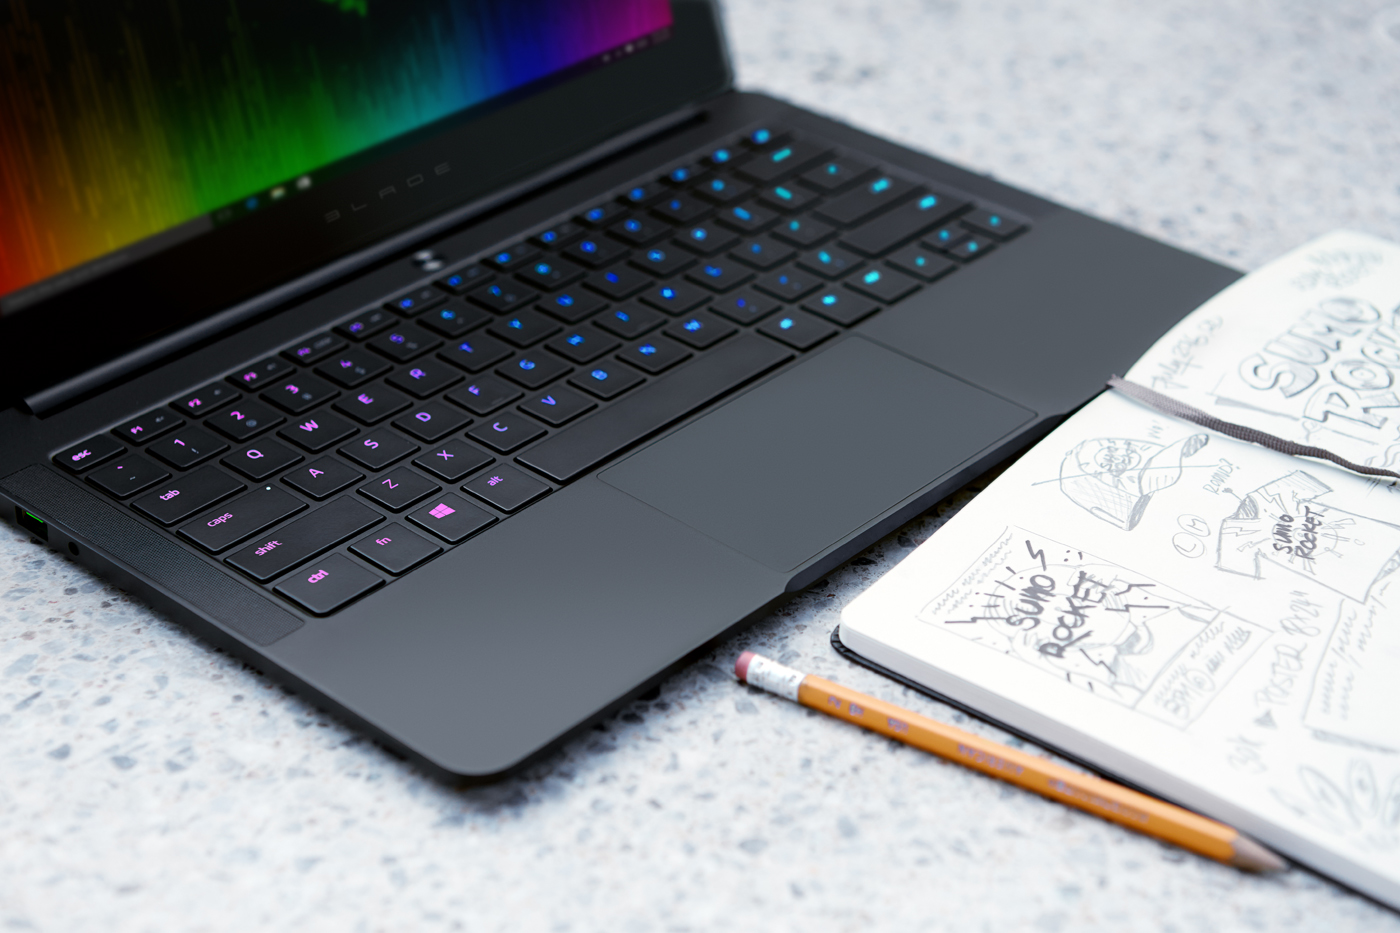 Razer's Blade Stealth and 'Core' add up to the gaming laptop I